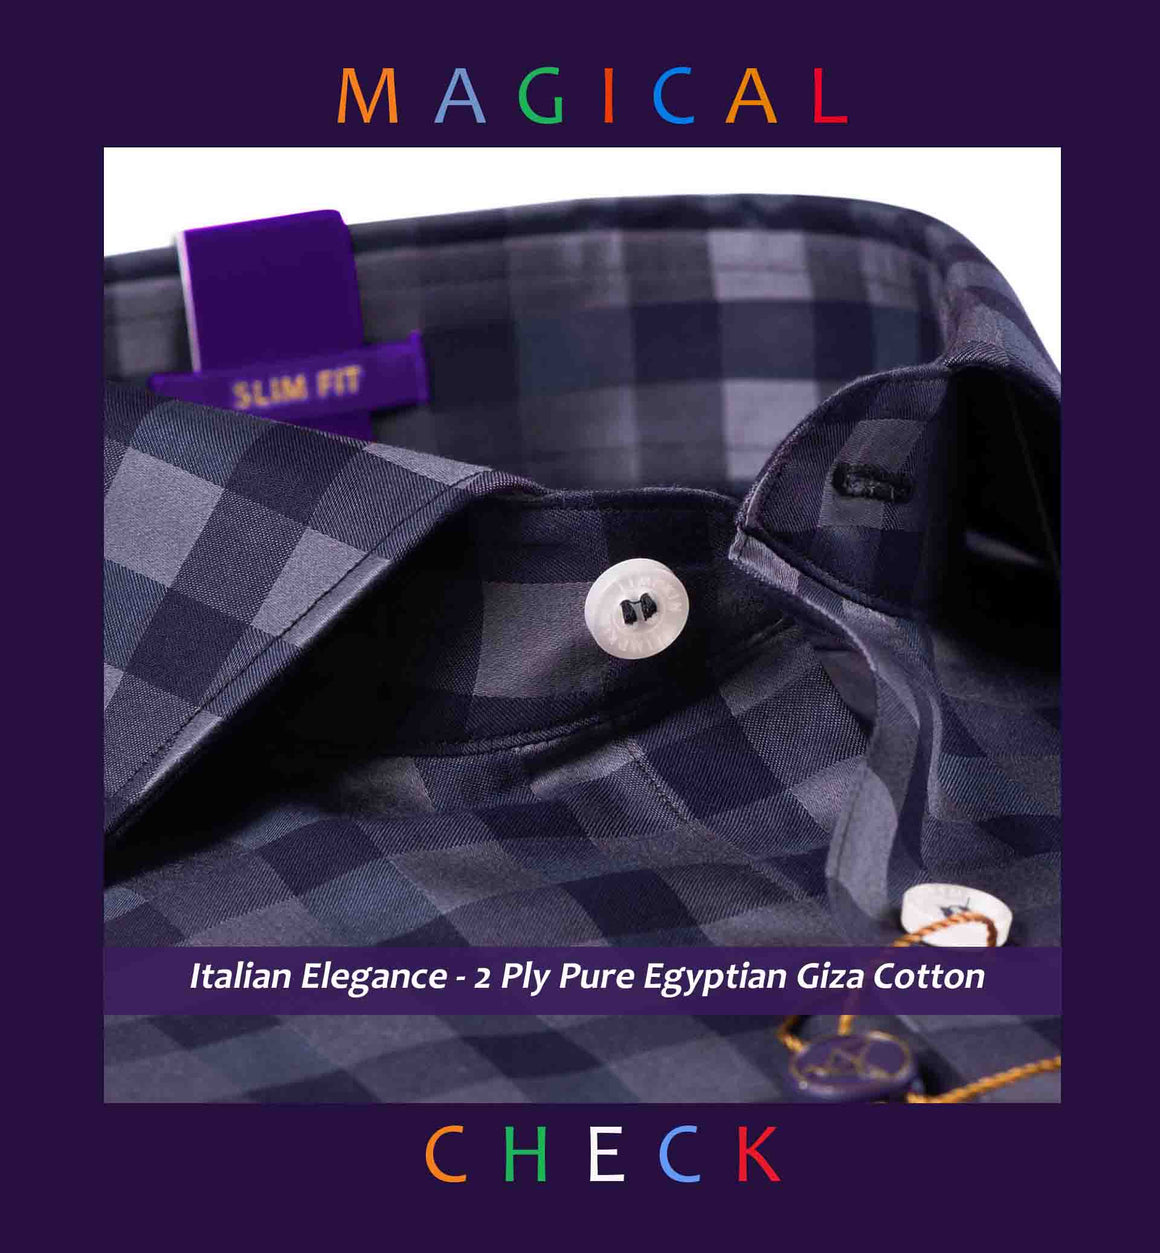 Oakville- Anchor Grey & Steel Grey Magical Check- 2 Ply Pure Egyptian Giza Cotton